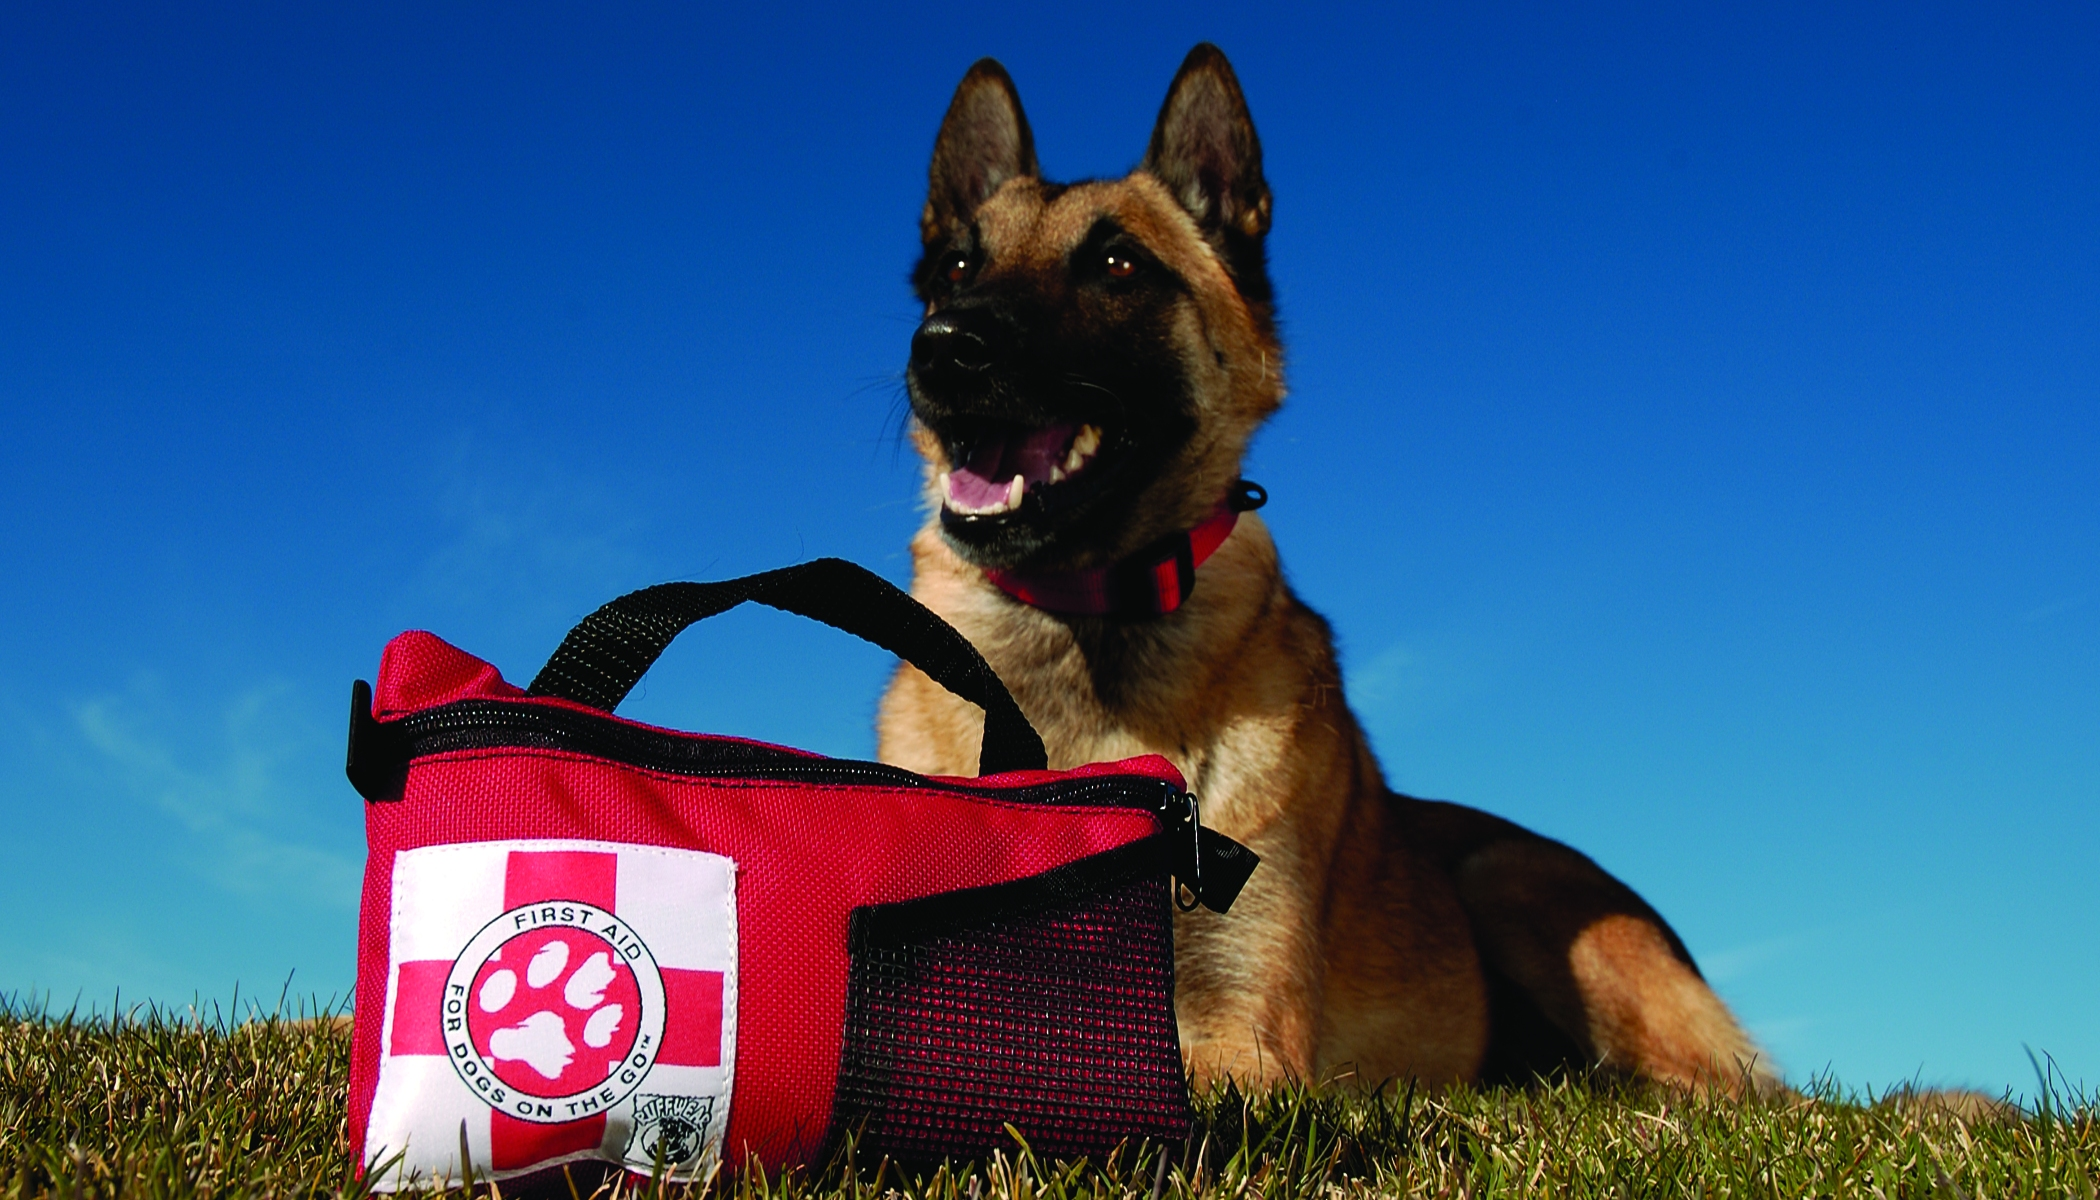 Pet first aid awareness being prepared will help keep your furry the american red cross has designated april as pet first aid awareness month just as the red cross is oftentimes the first responder when disasters strike xflitez Choice Image